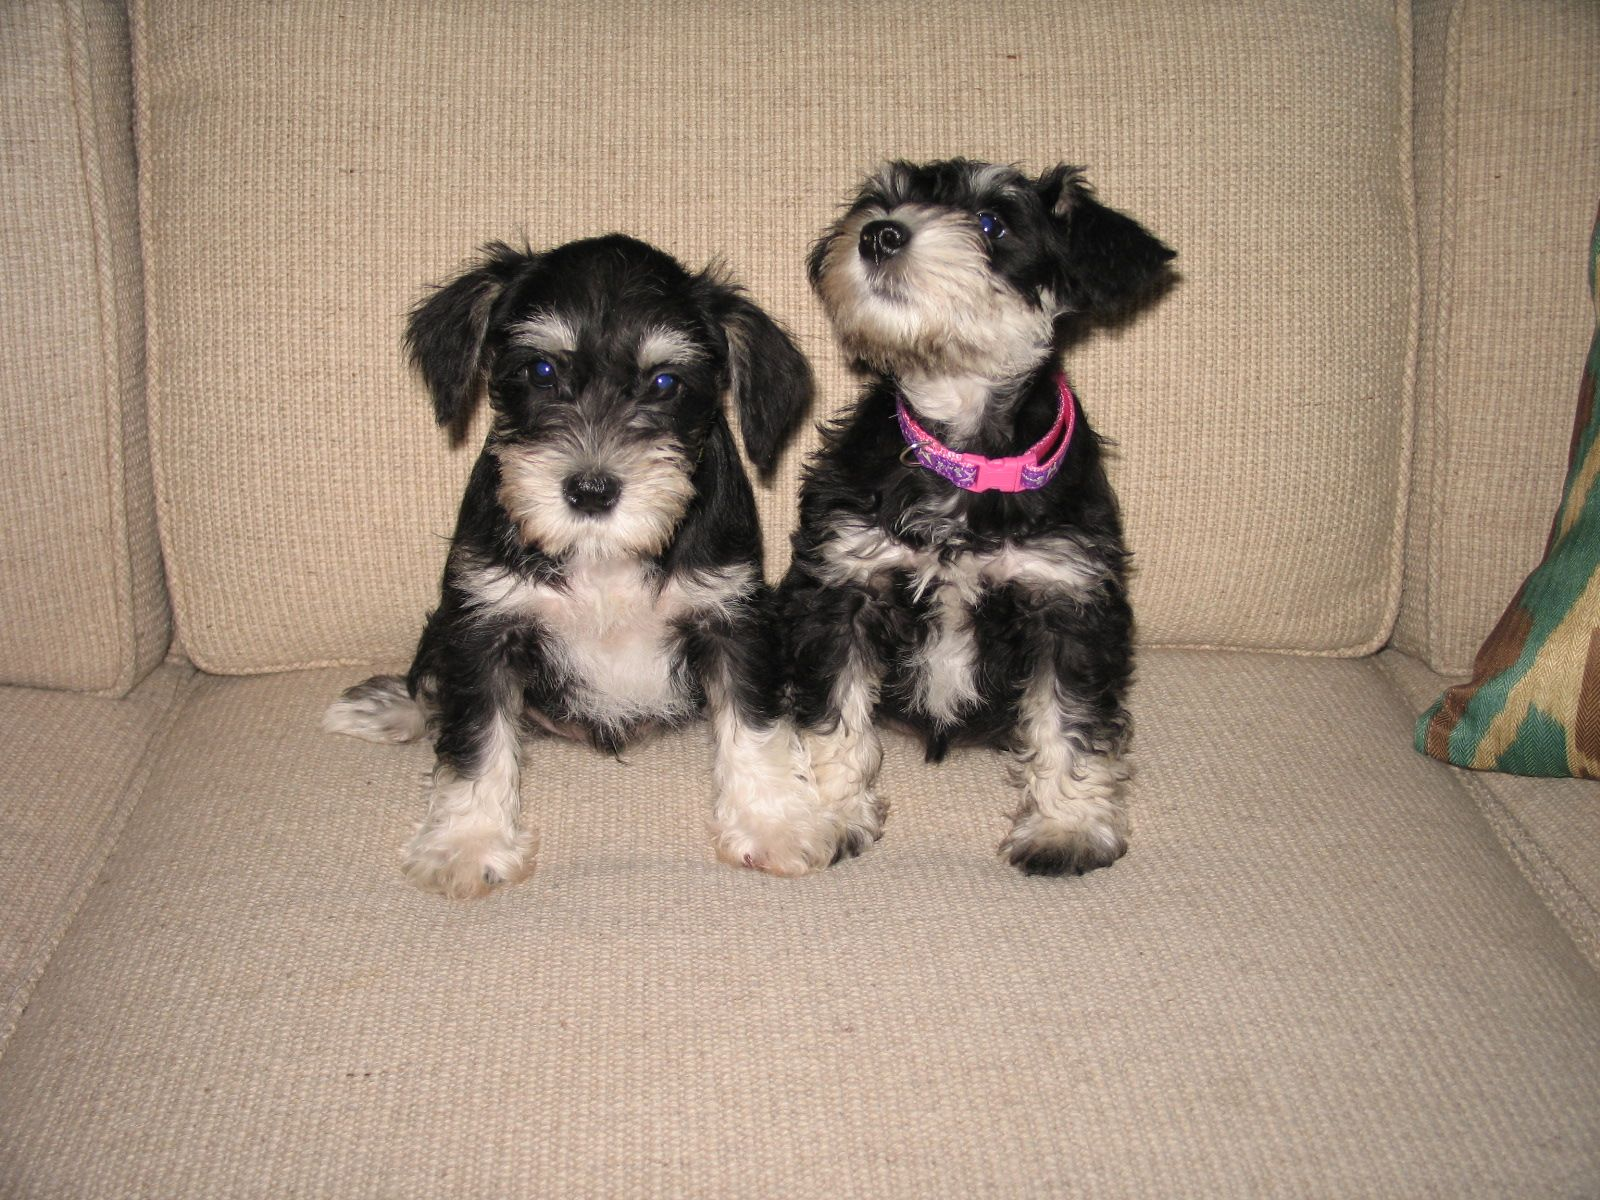 This is Dusty and Katy, Mini Schnauzers at 8 weeks old ...